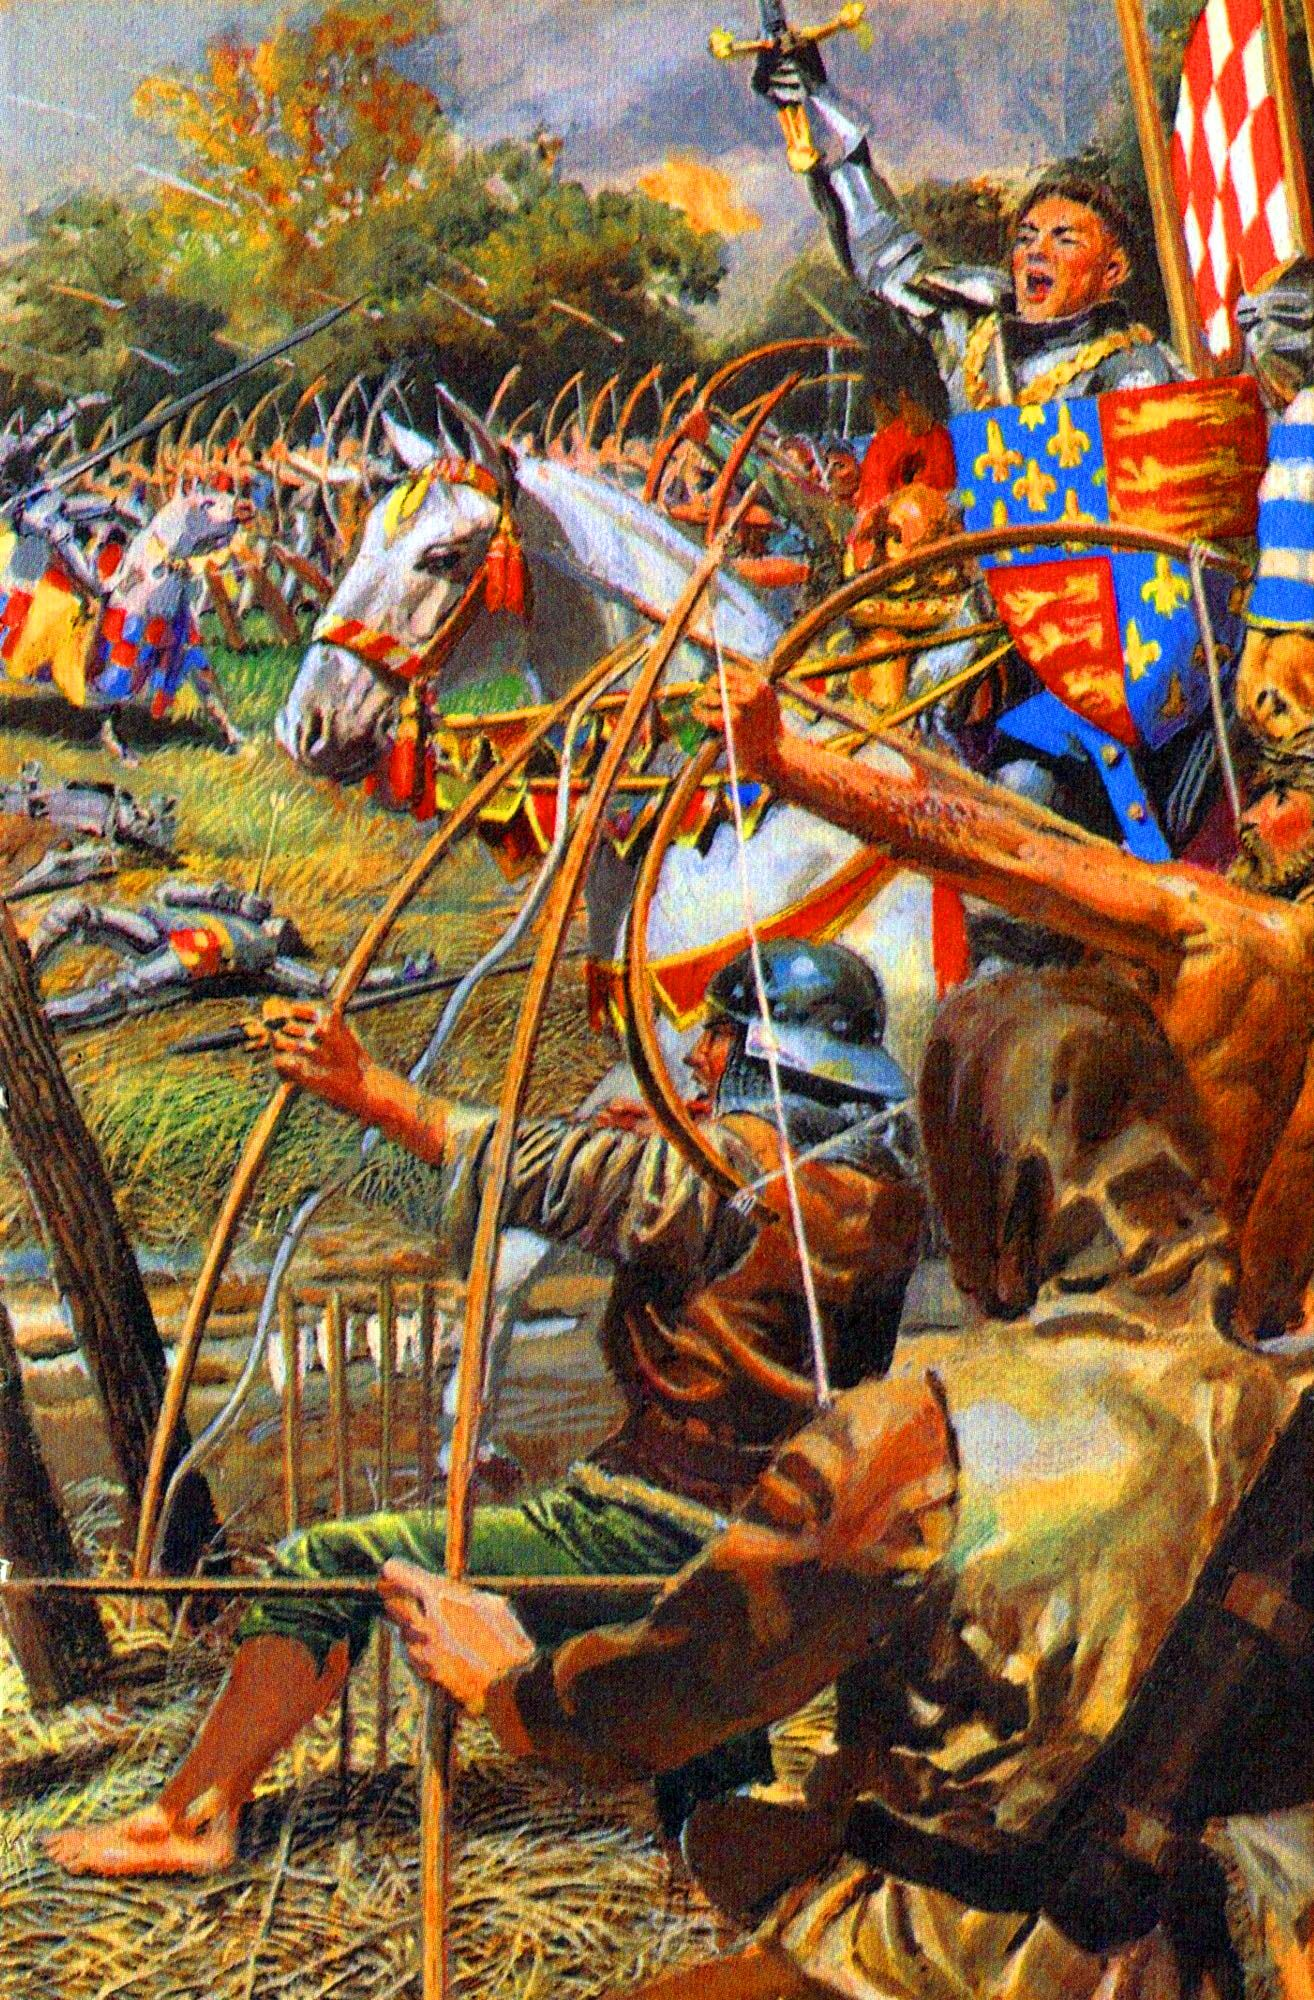 king henry v at agincourt hundred years war art king henry v at agincourt middot 100 years warhundred